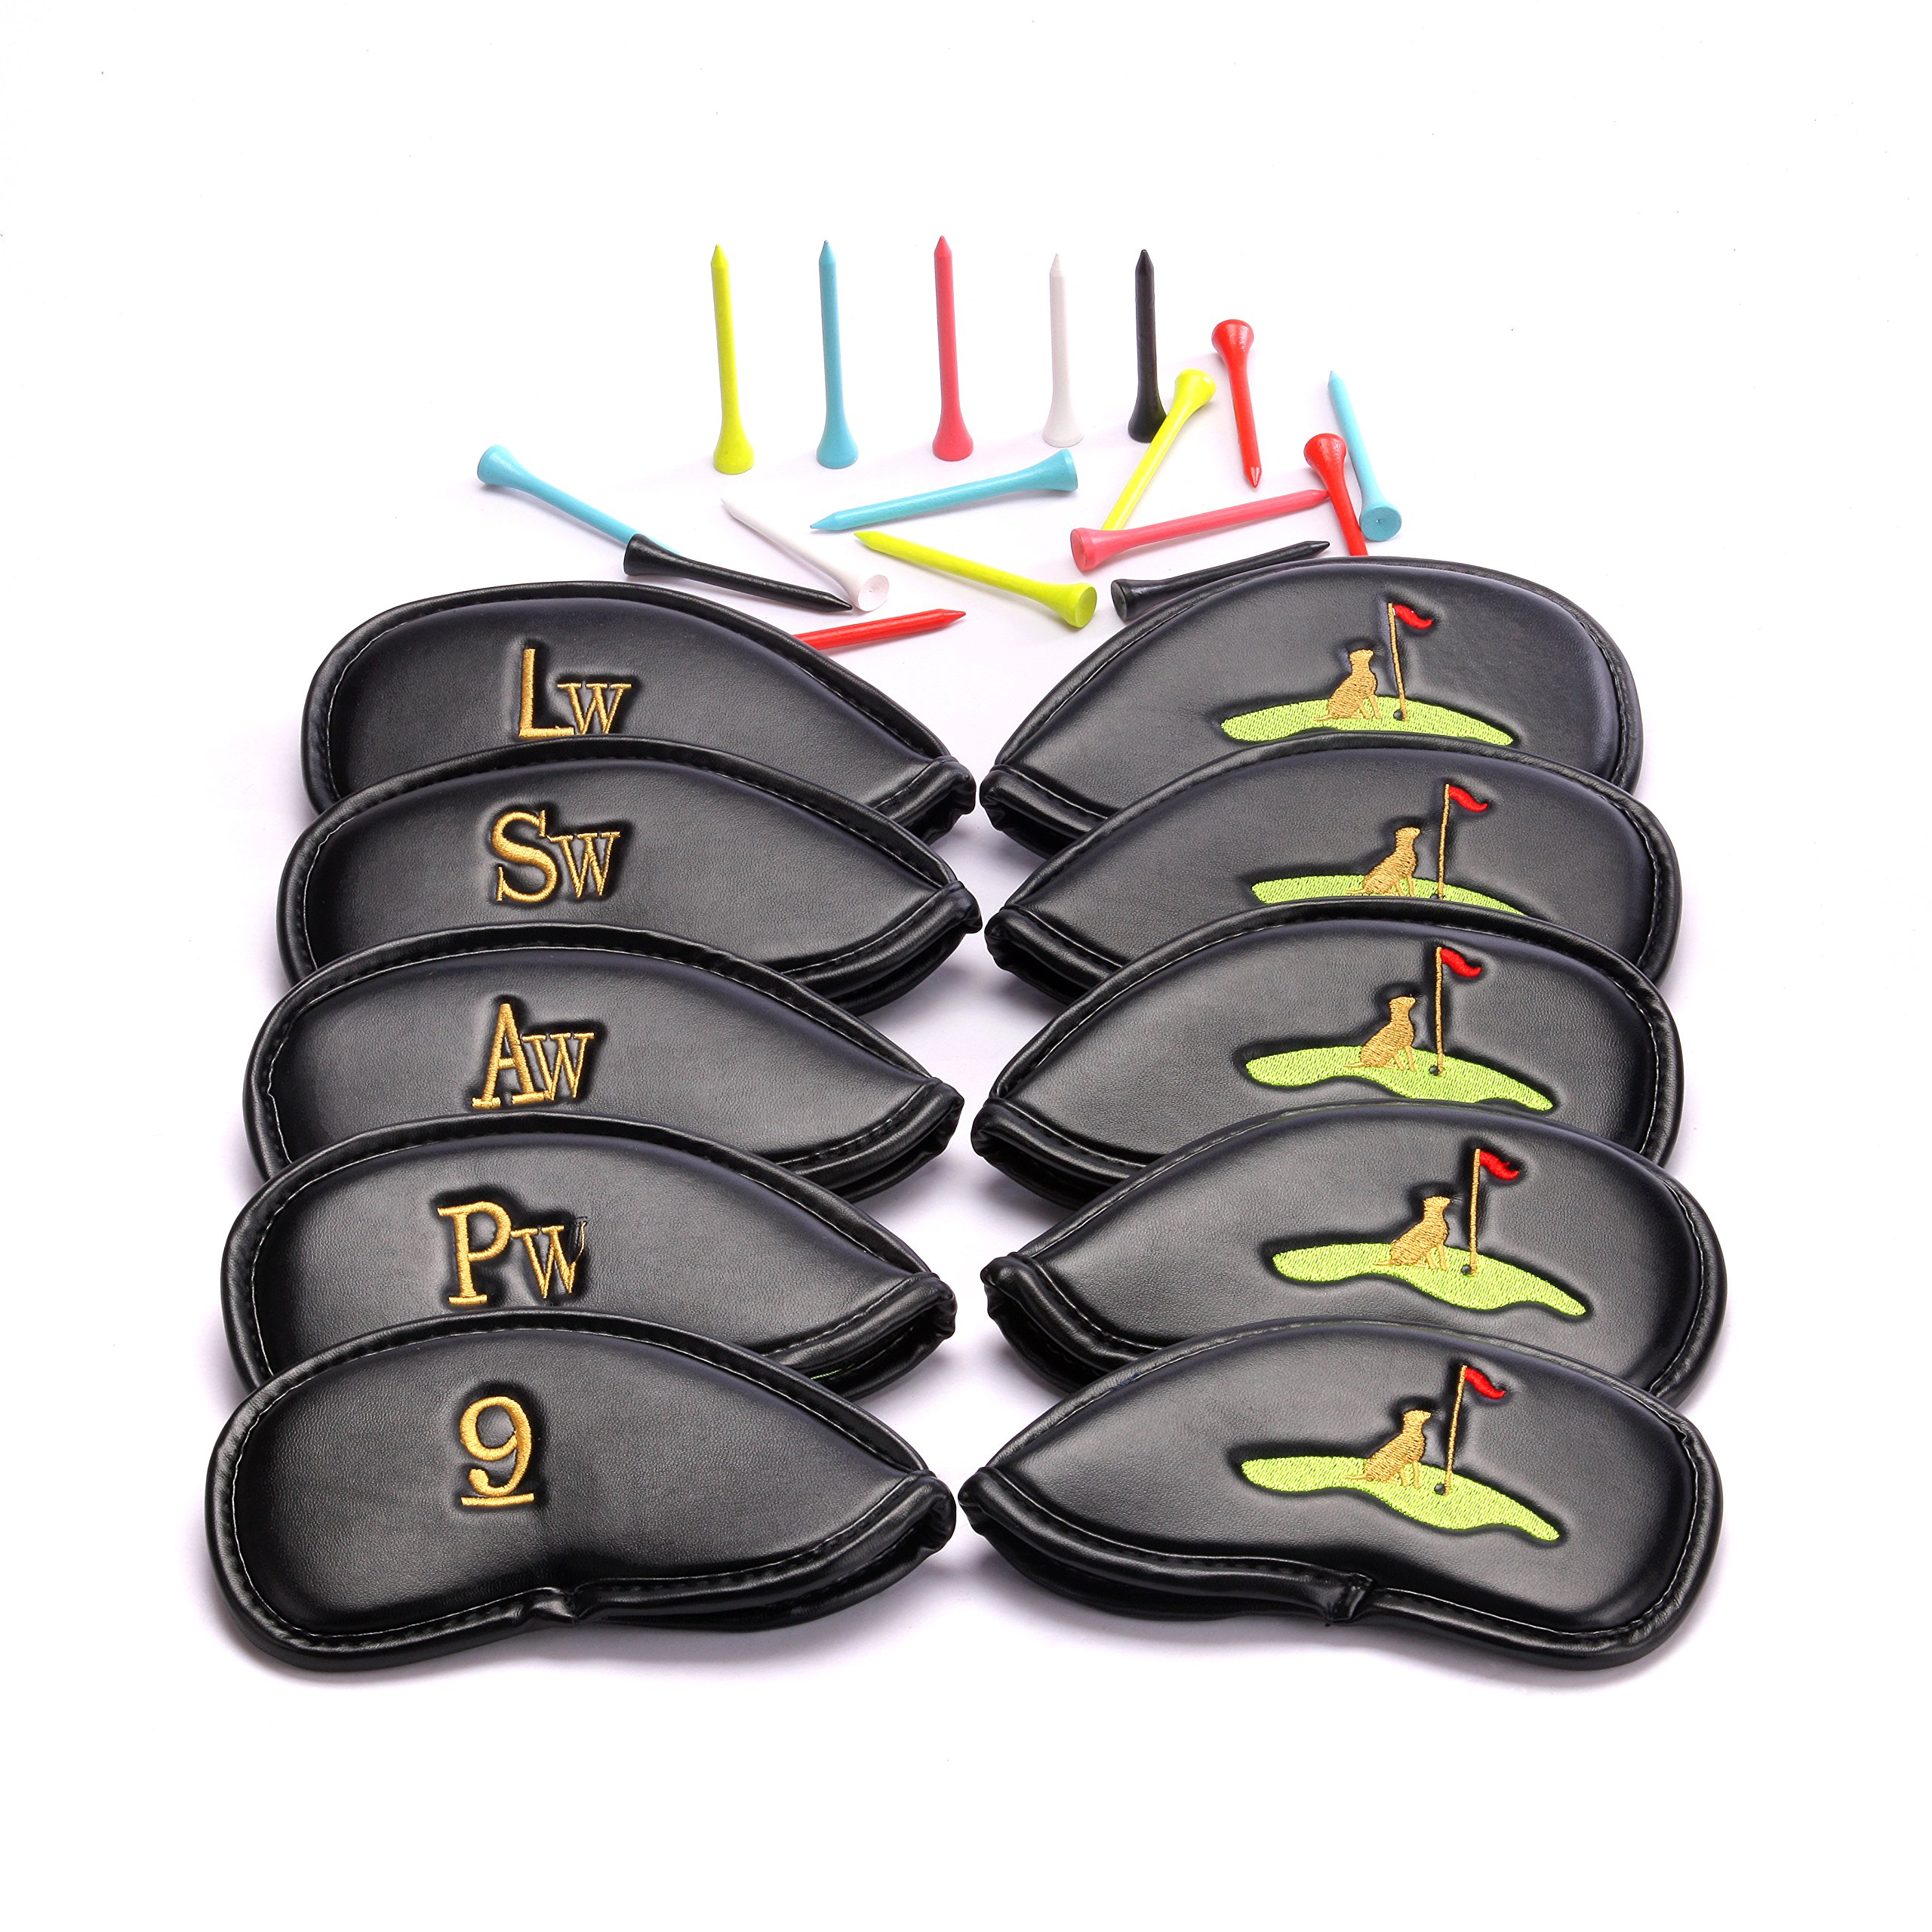 Golf Club Headcovers 30 Golf Tees Seasonal Promotion Set of 10 PU Leather  Golf Iron Club Covers Stylish 3D Embroidery Suitable for Right and Left  Handed ...